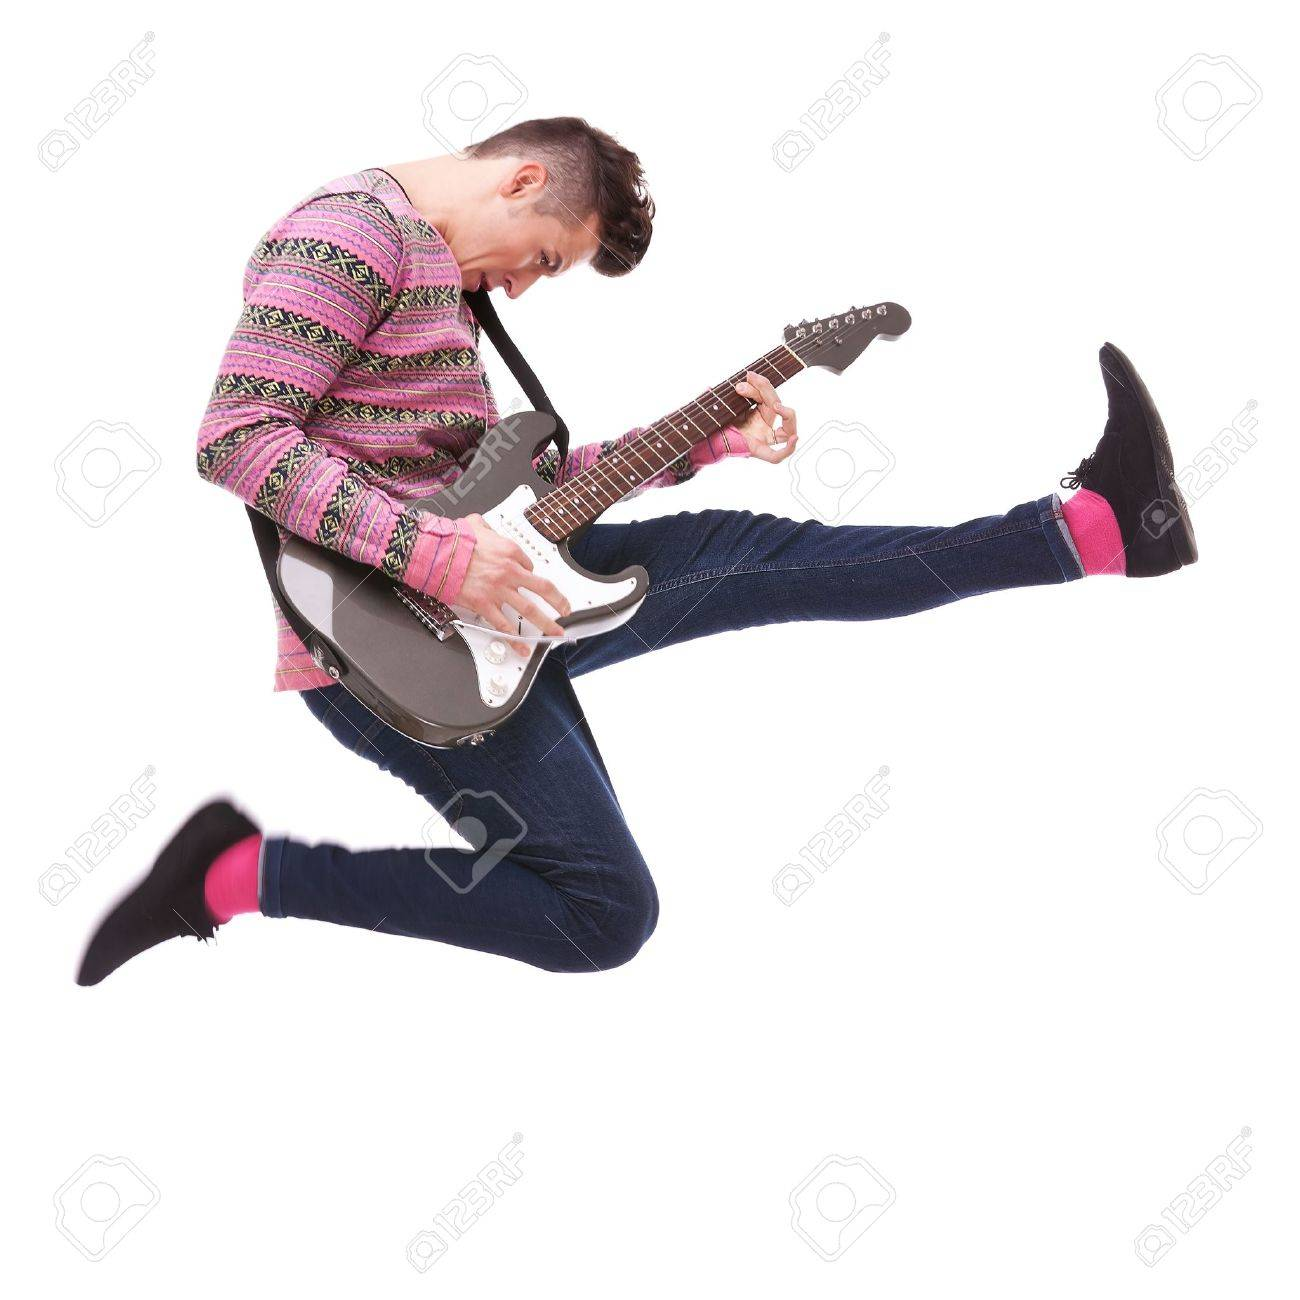 passionate guitarist jumps in the air on white background. casual man playing an electric guitar and jumping Stock Photo - 12581623